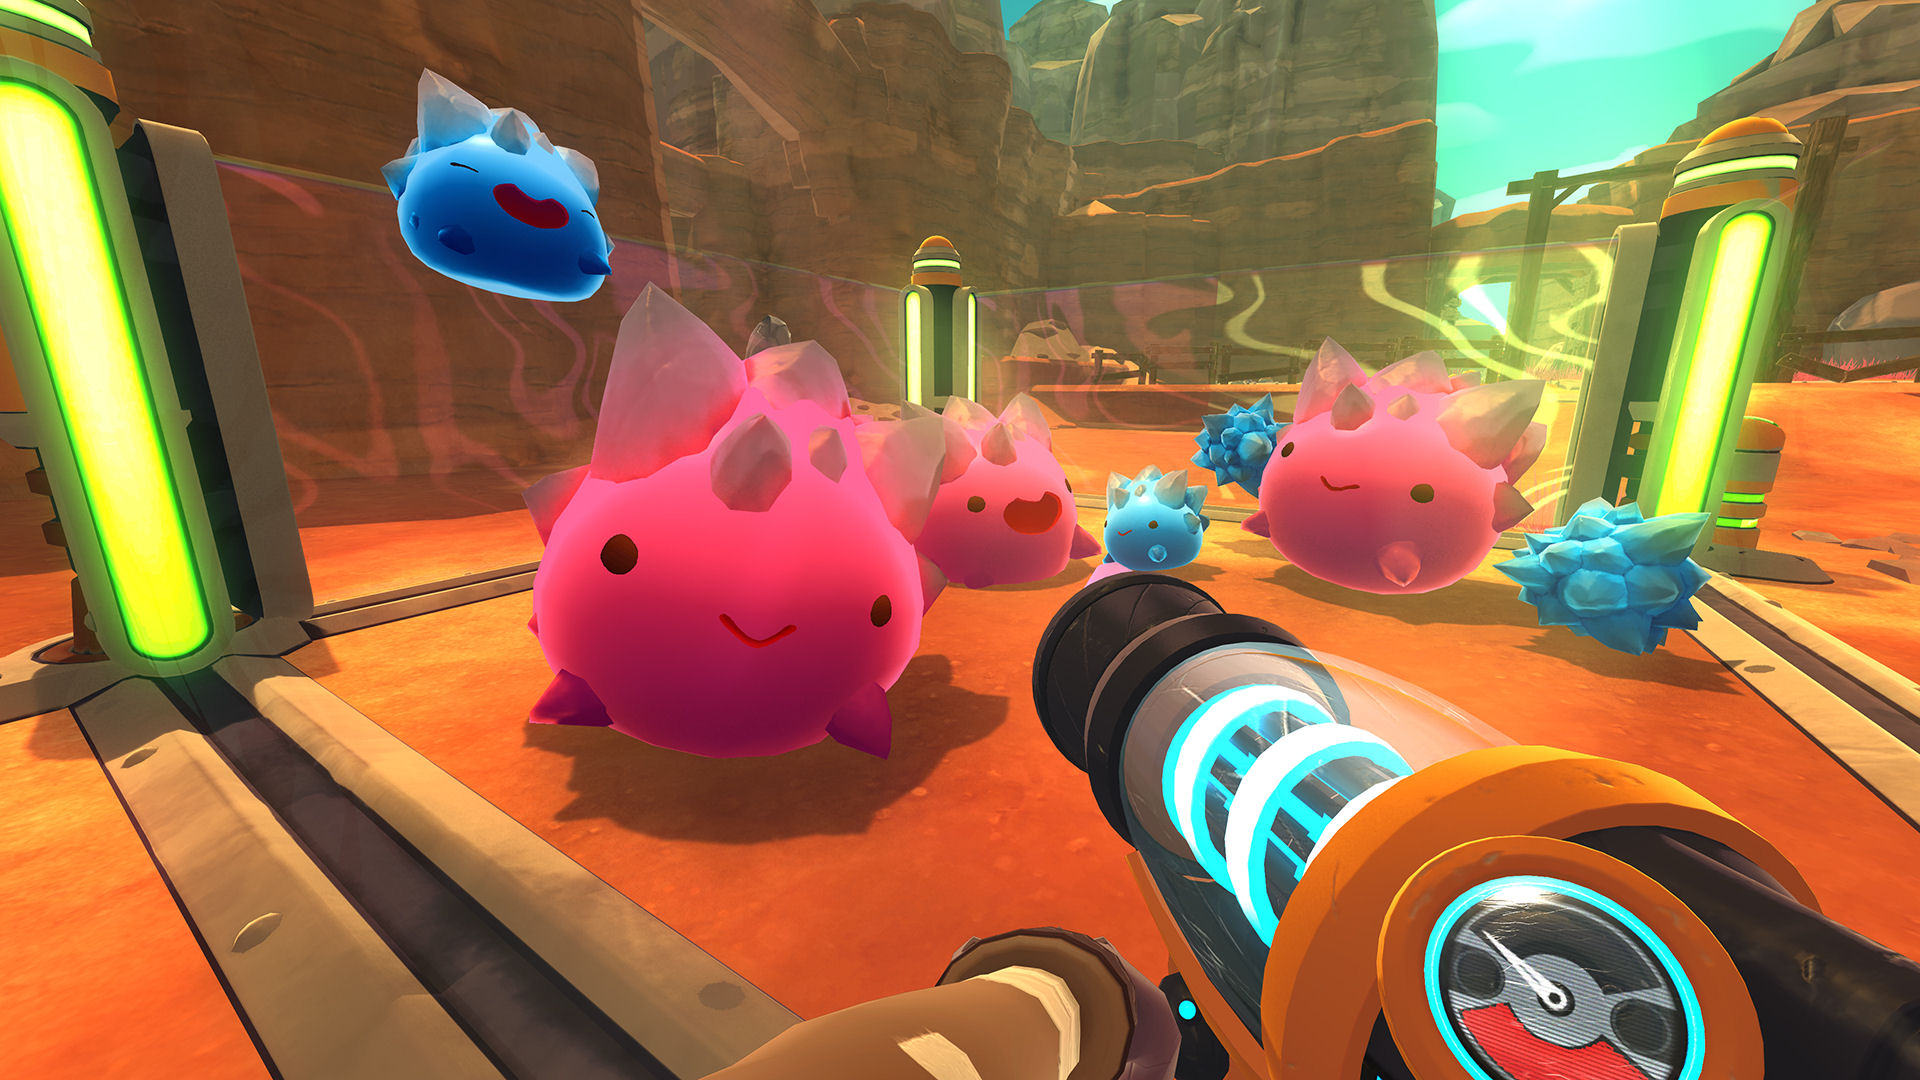 Slime Rancher Screenshot 2.jpg